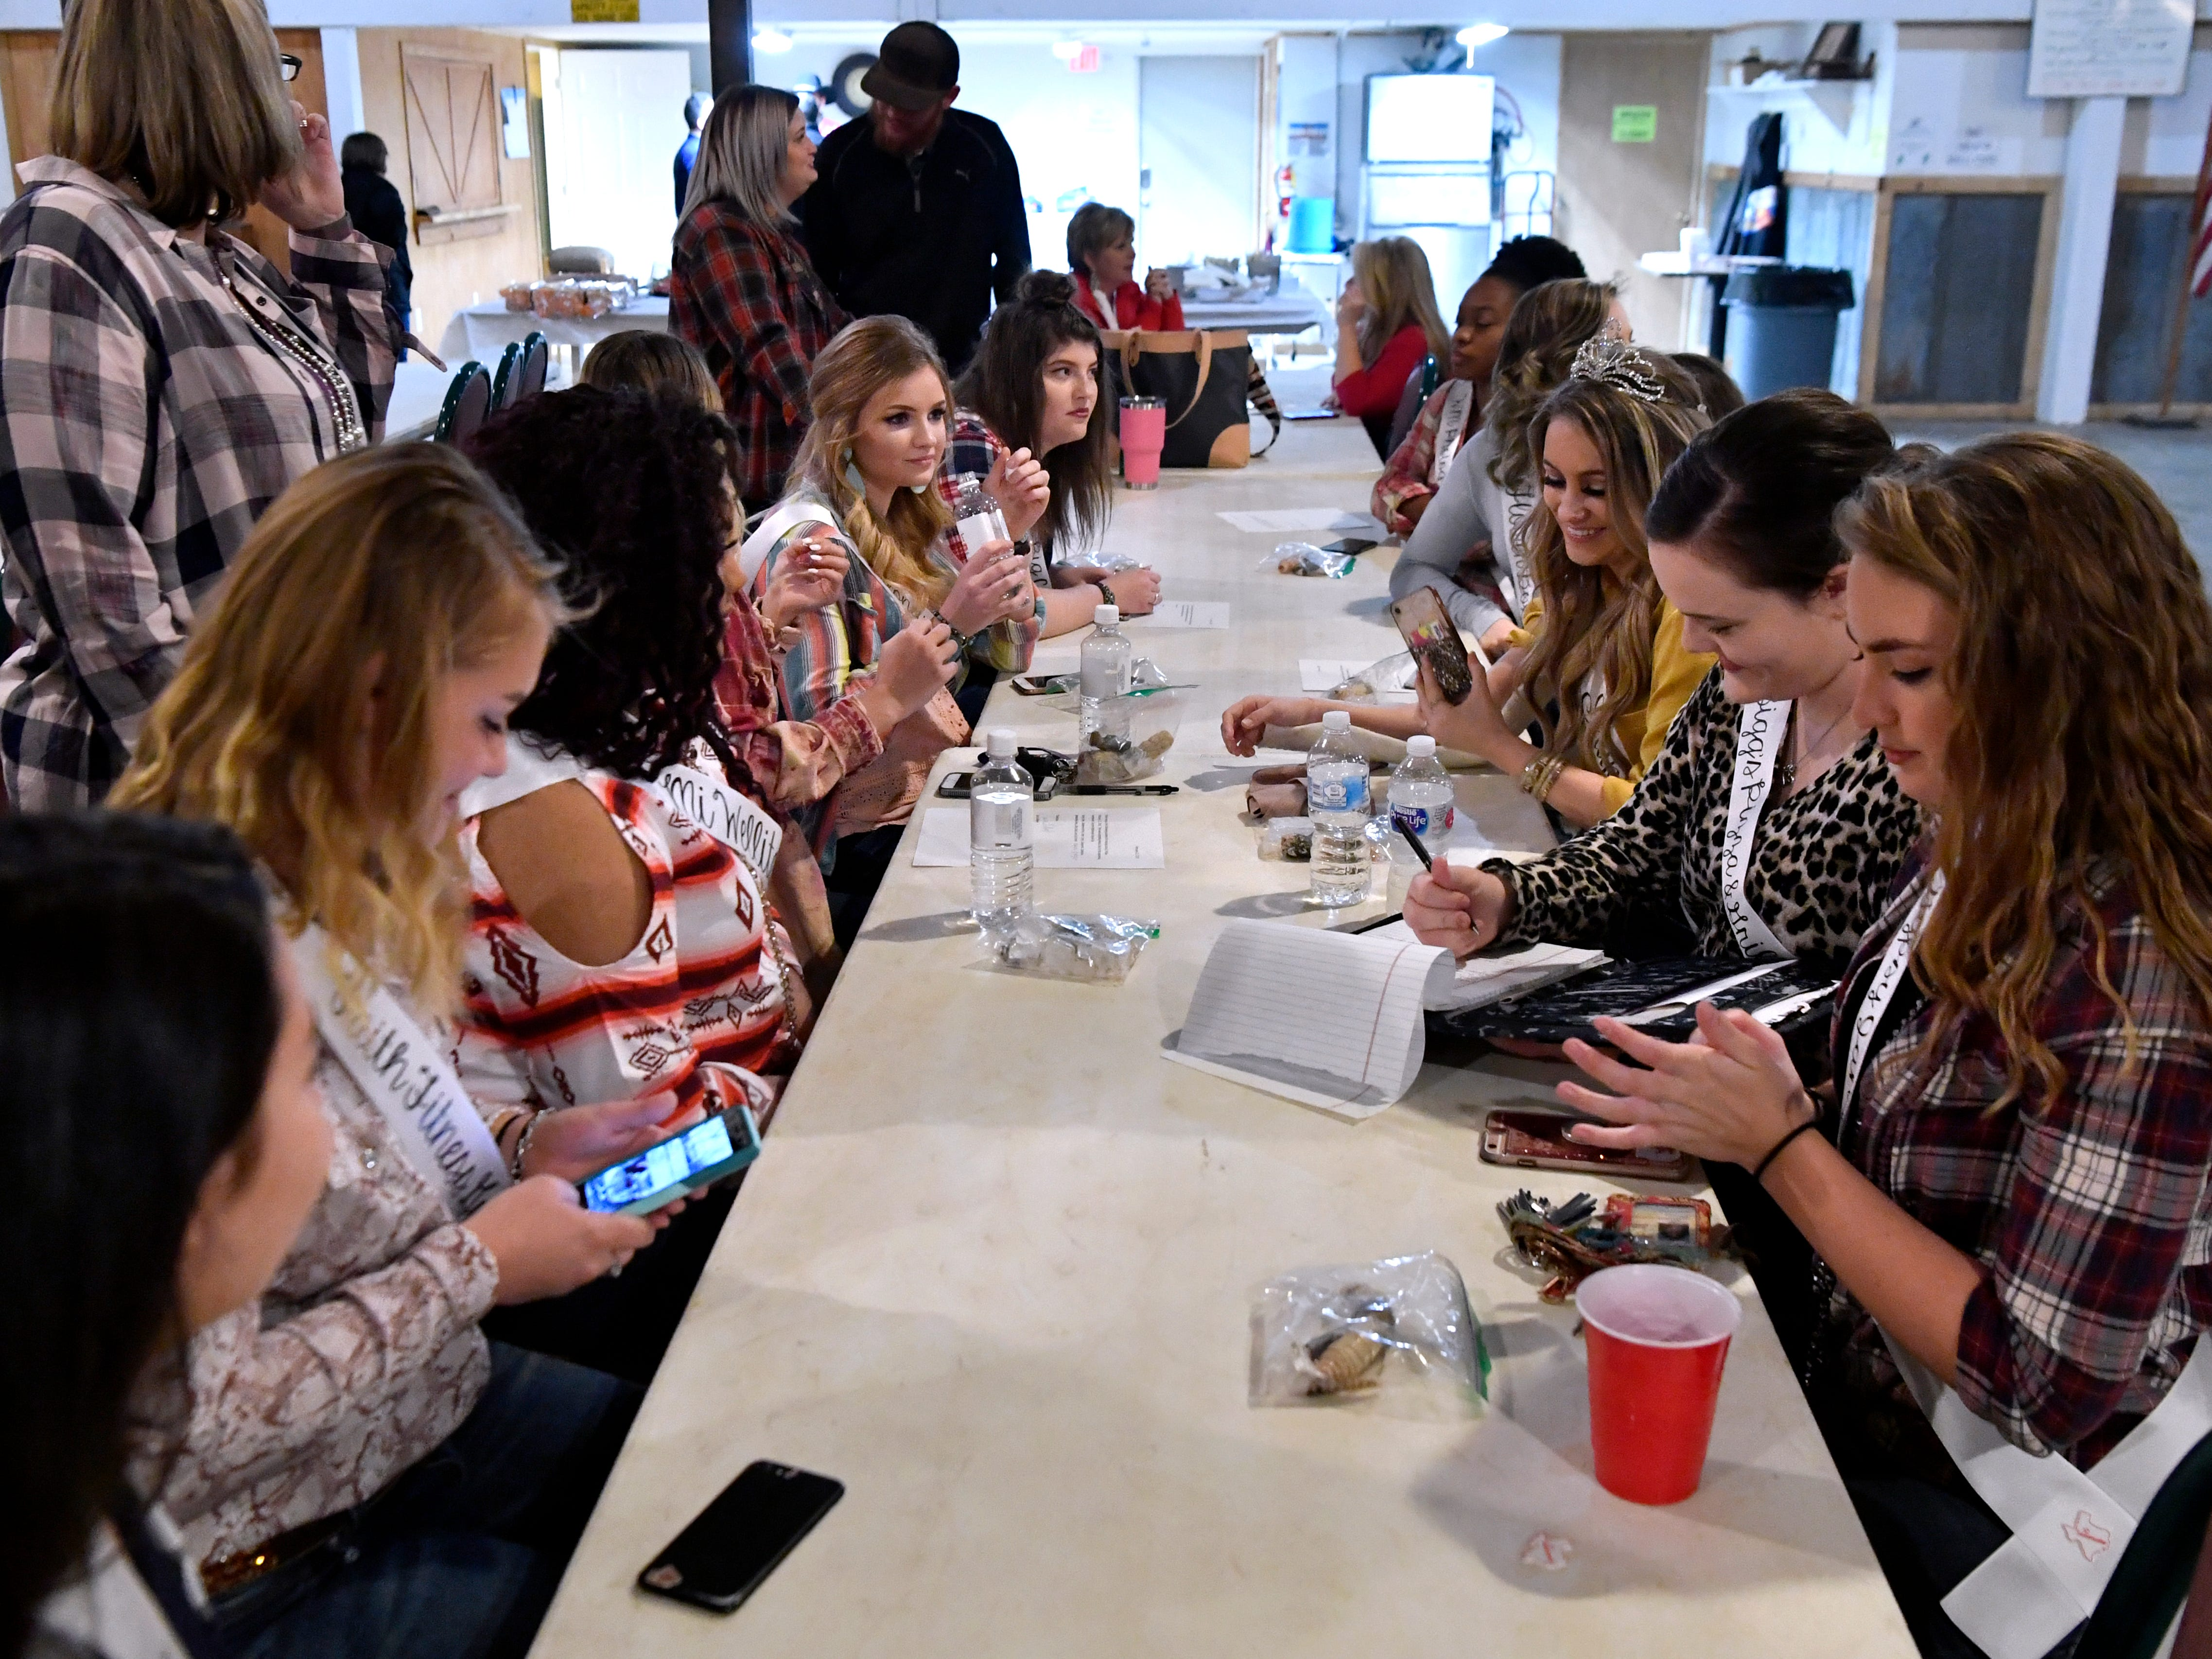 Miss Snake Charmer contestants wait for lunch to be served Friday Feb. 22, 2019 at the Sweetwater Jaycee's Barn. Media Day introduces the Big Country to this year's Miss Snake Charmer contestants. The pageant will be March 7, followed by the World's Largest Rattlesnake Roundup March 8-10.